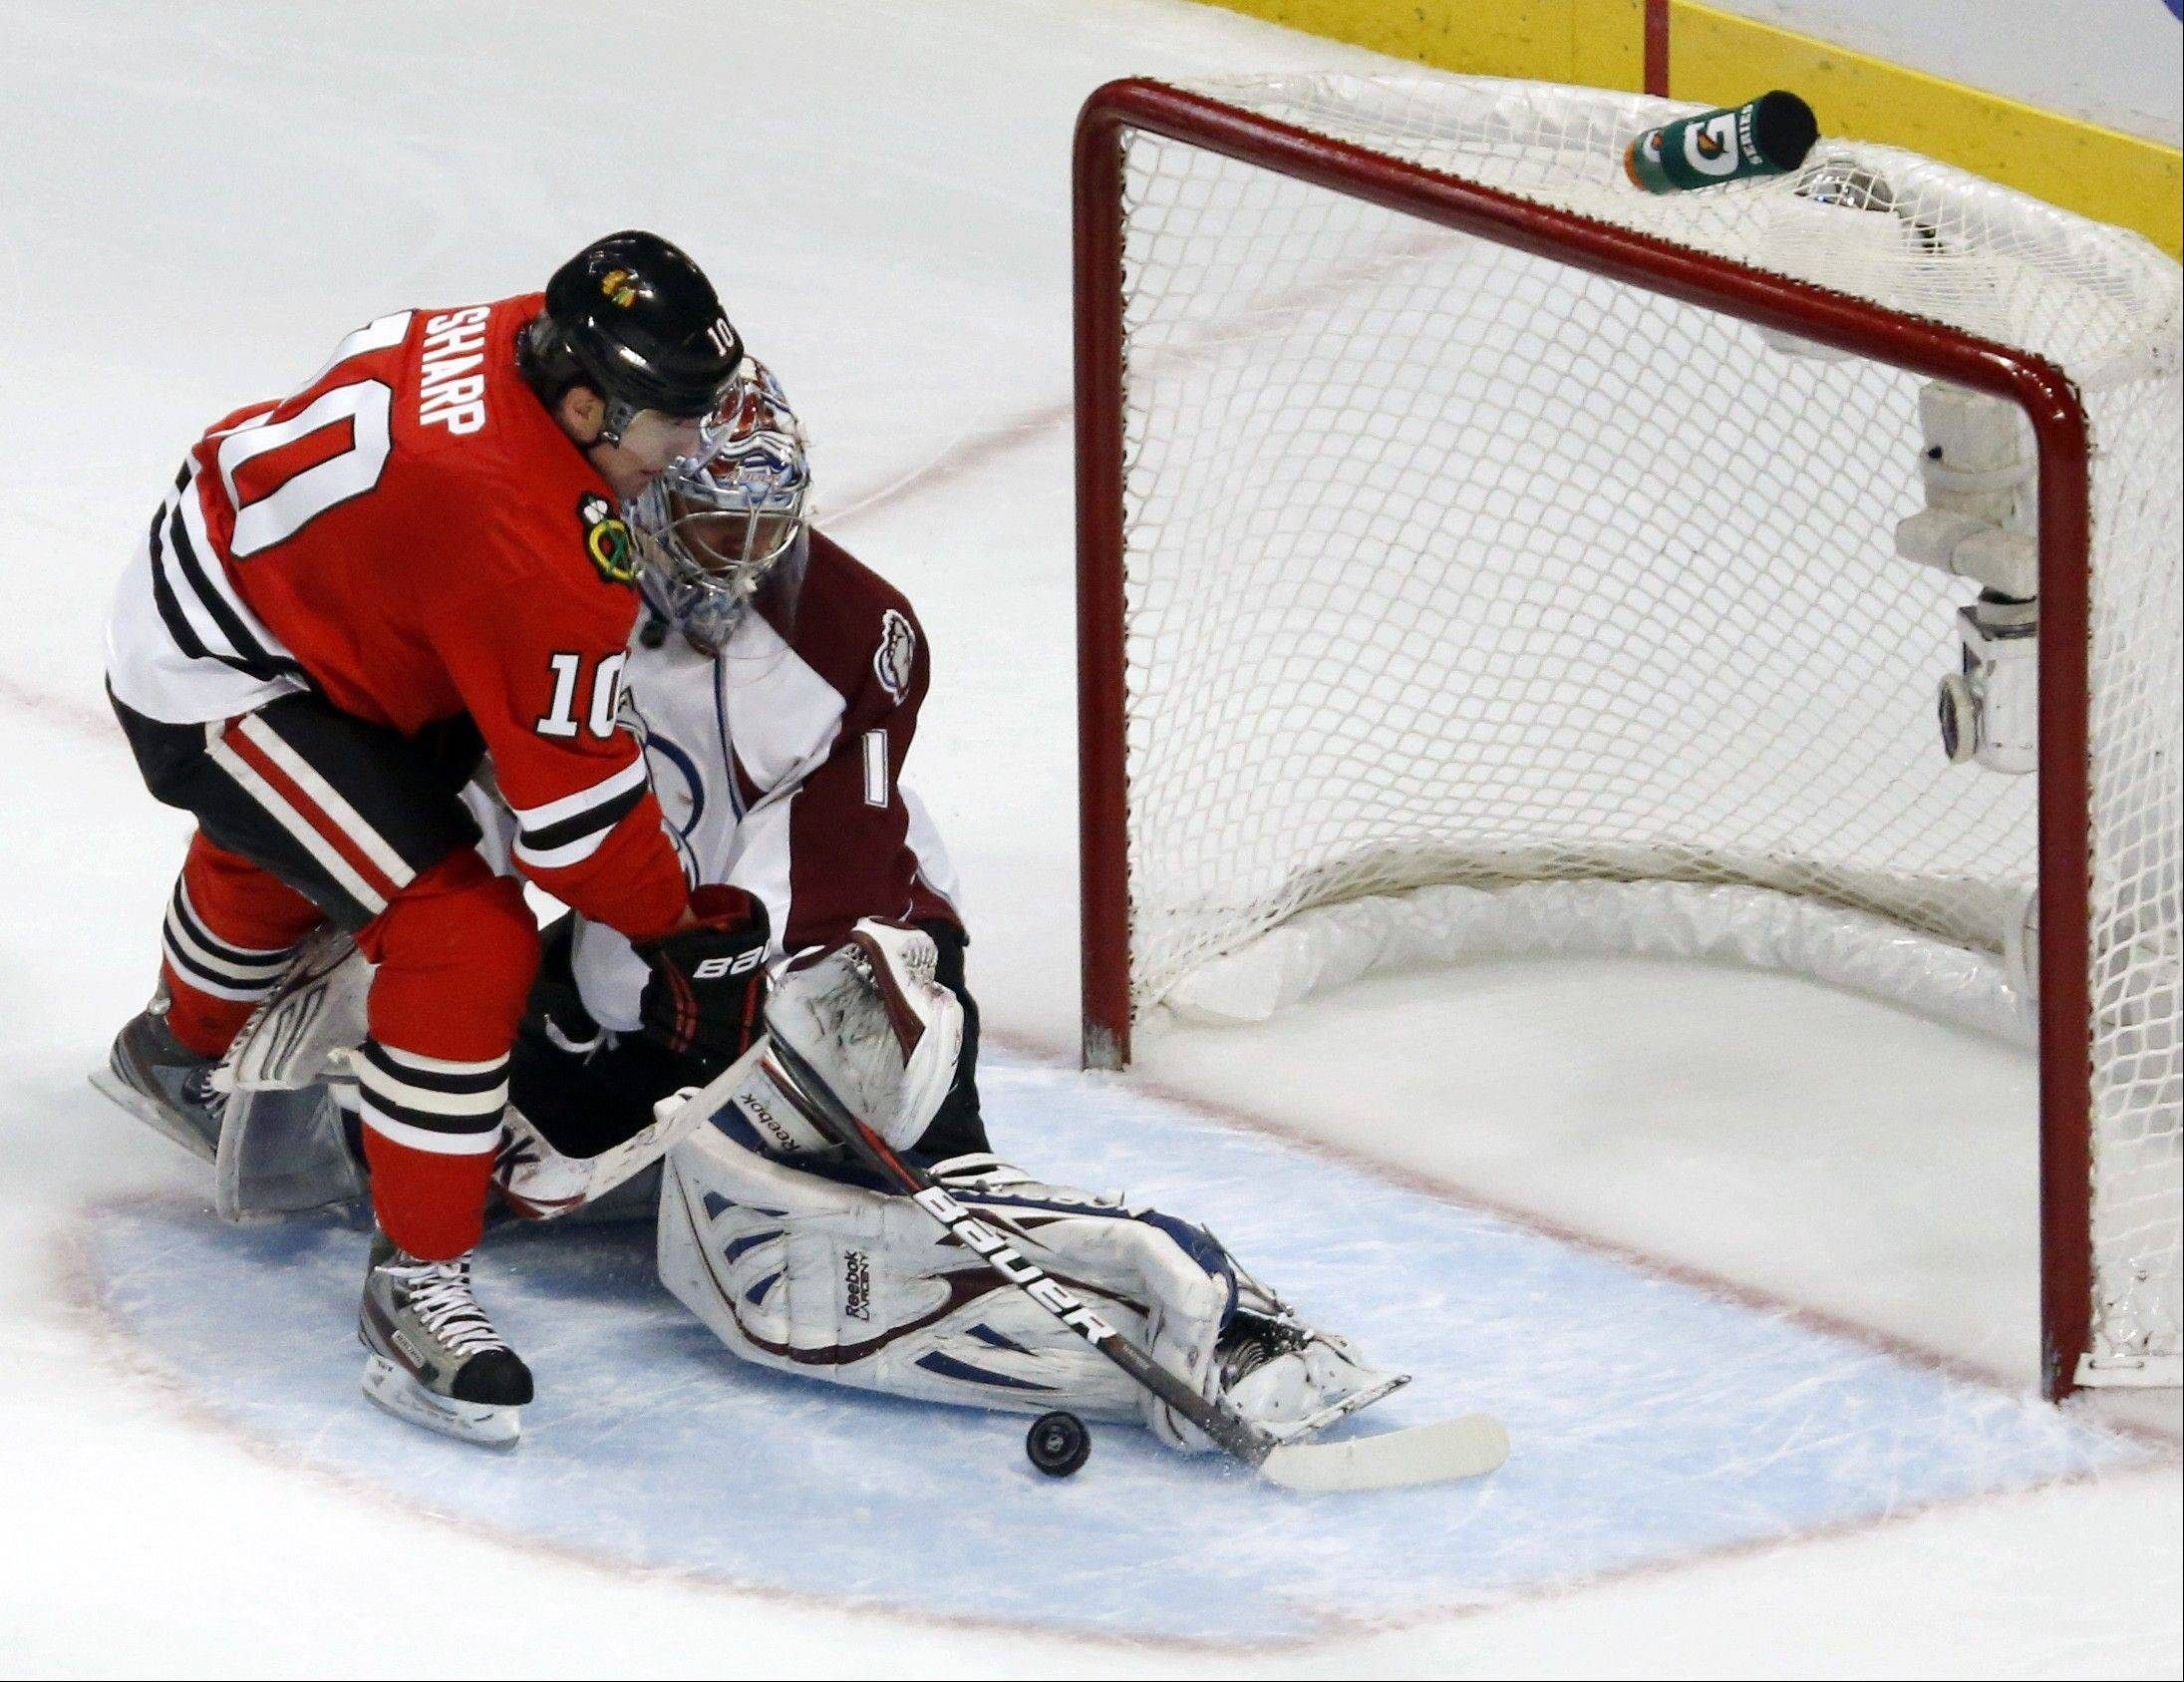 Colorado Avalanche goalie Semyon Varlamov makes a save on a shot by Chicago Blackhawks center Patrick Sharp during the second period.